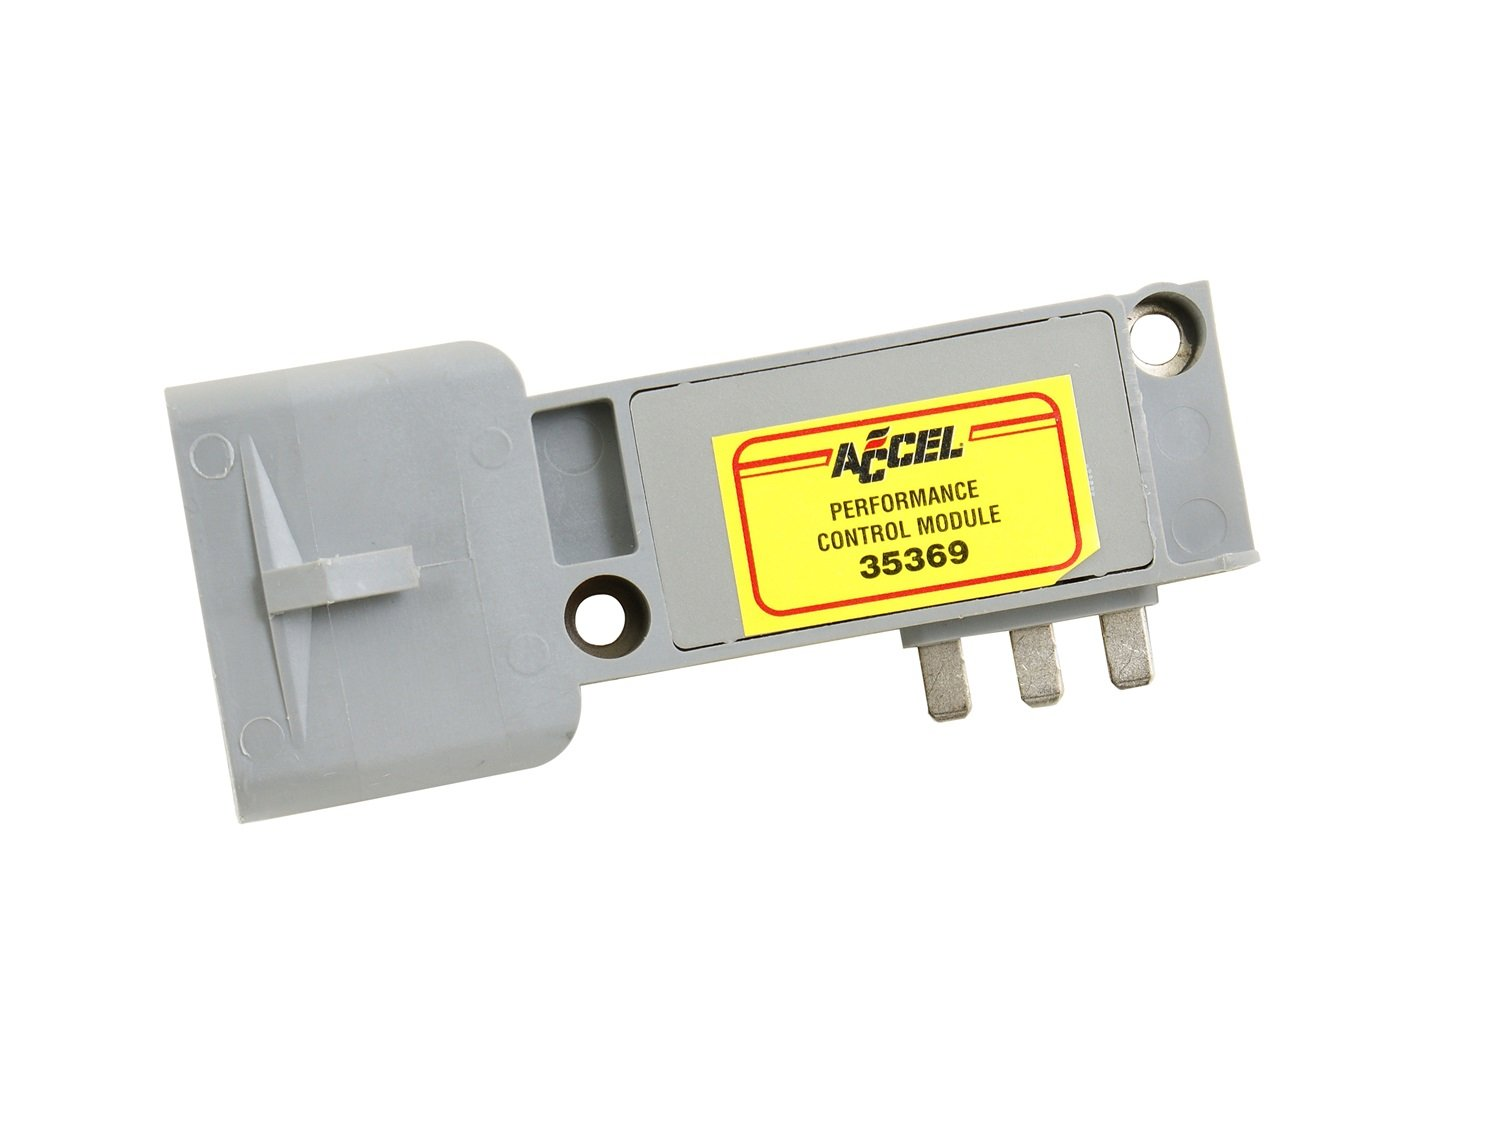 Amazoncom ACCEL 35369 Ignition Control Module Automotive